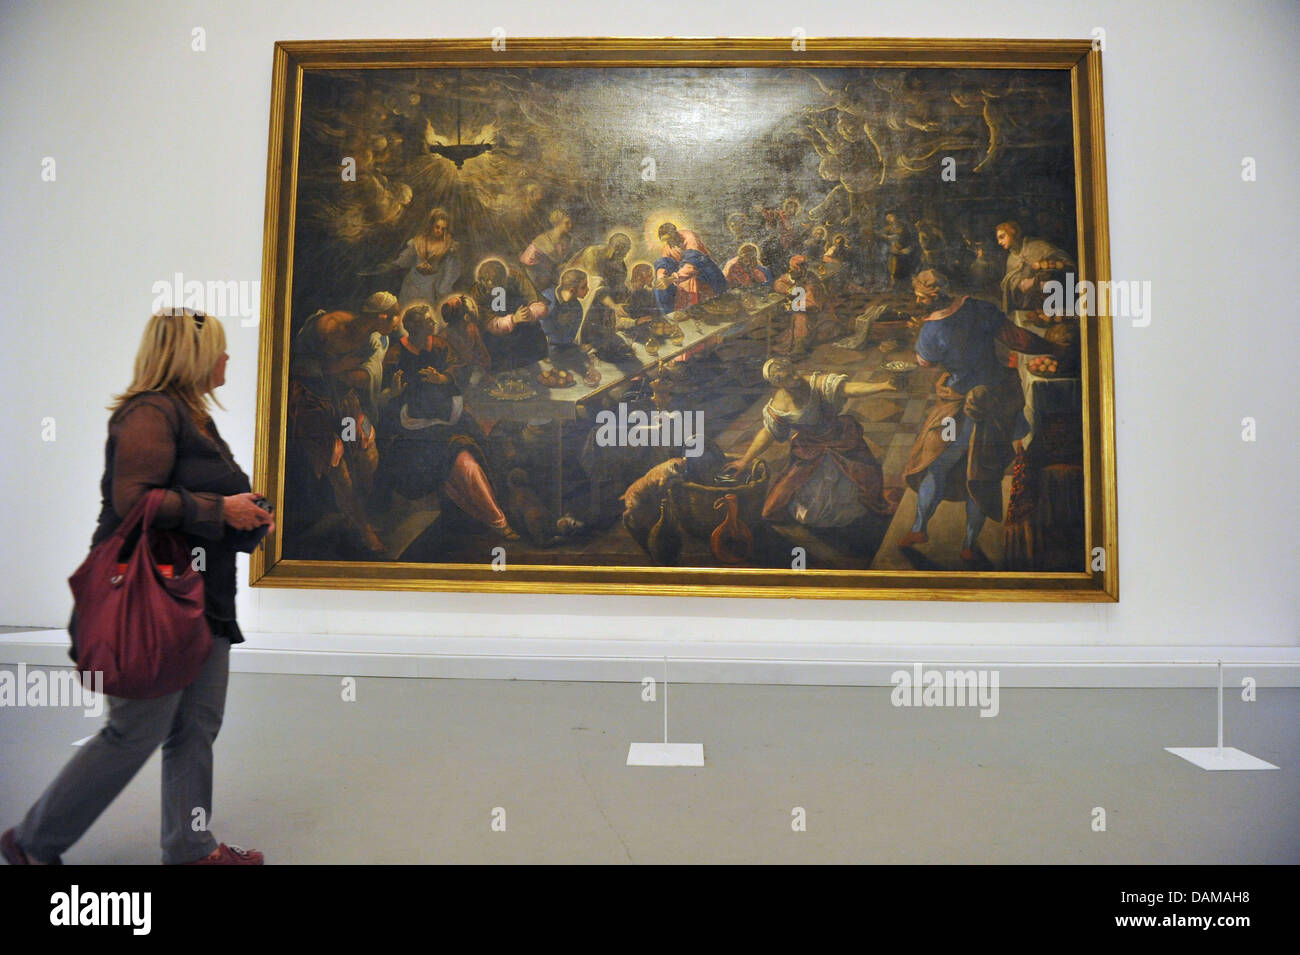 The work of art 'The last supper' by the artists Jacopo Tintoretto is presented at the 54th Art Biennale in Venice, Stock Photo